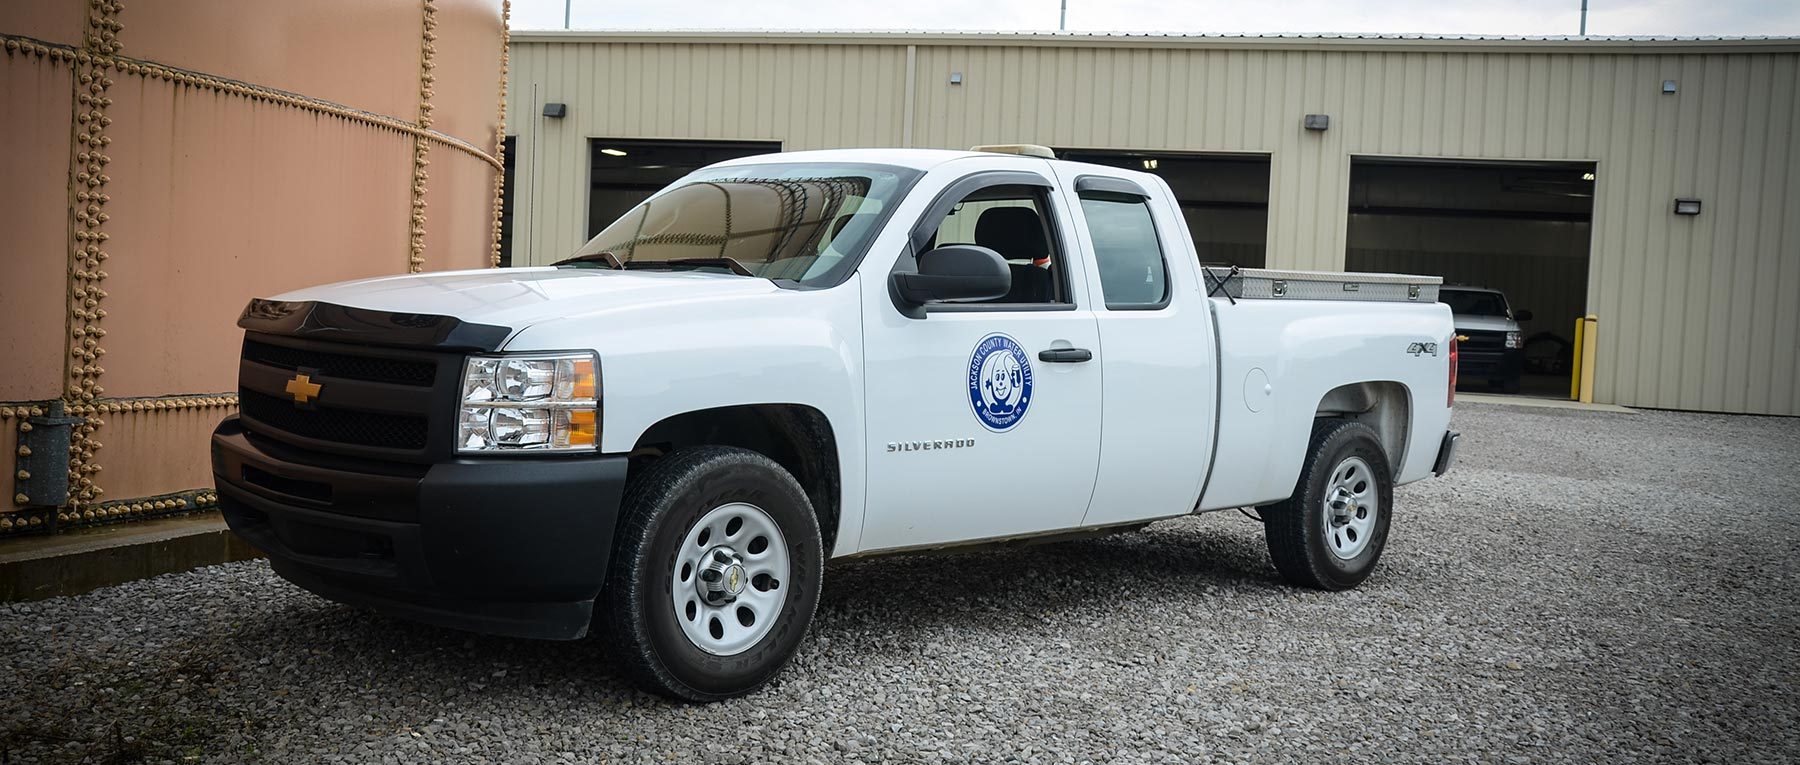 Jackson County Water Utility Service